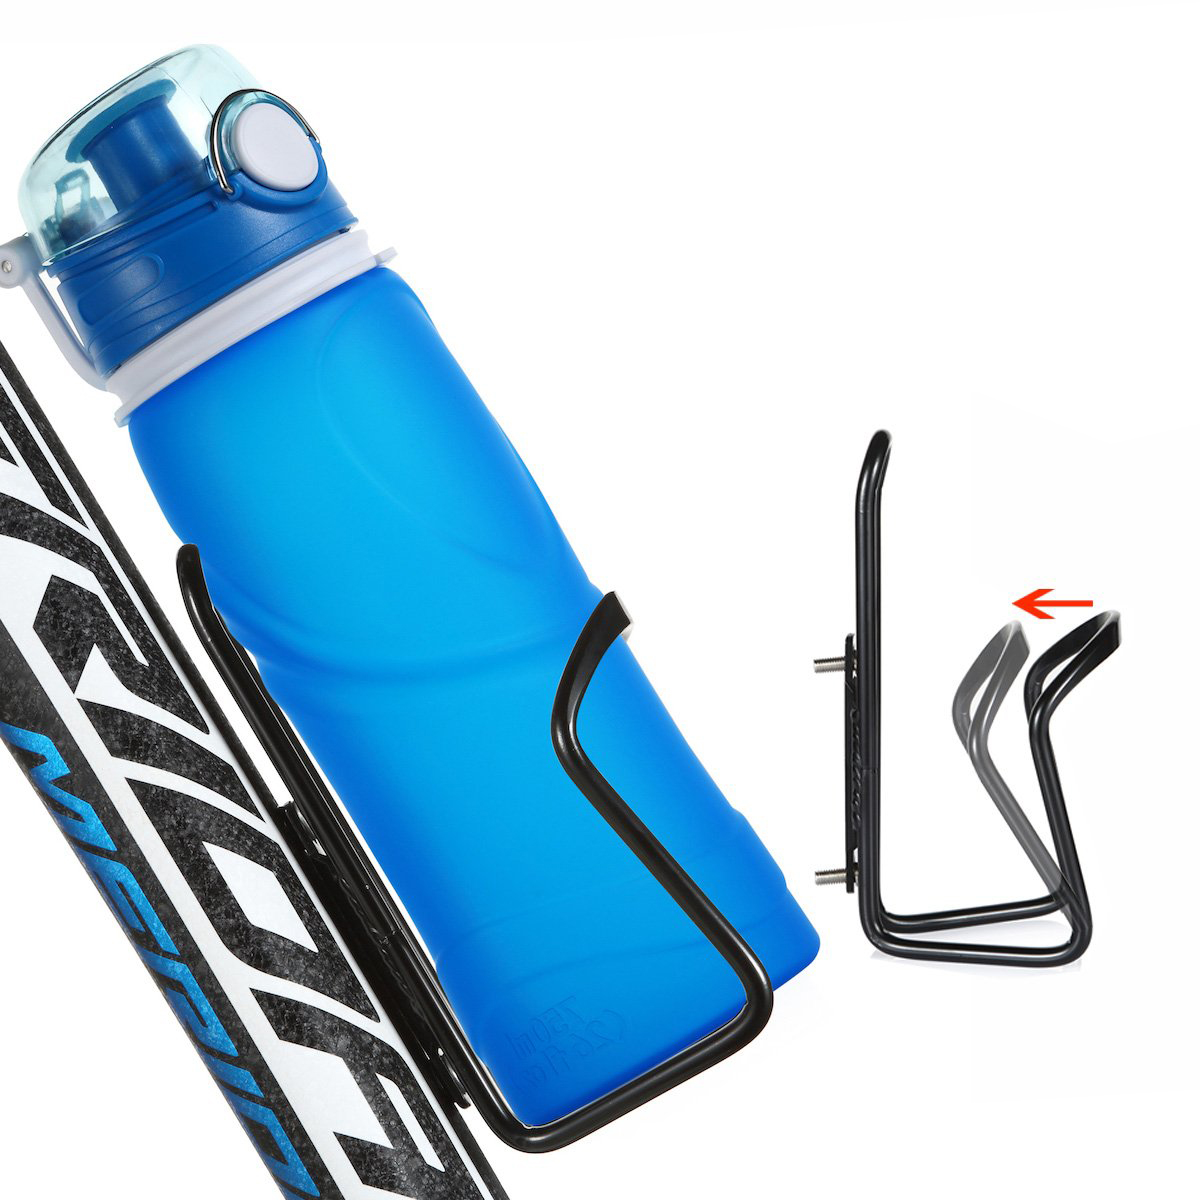 Bicycle Alloy Aluminum Light weight Water Bottle Holder For Bike